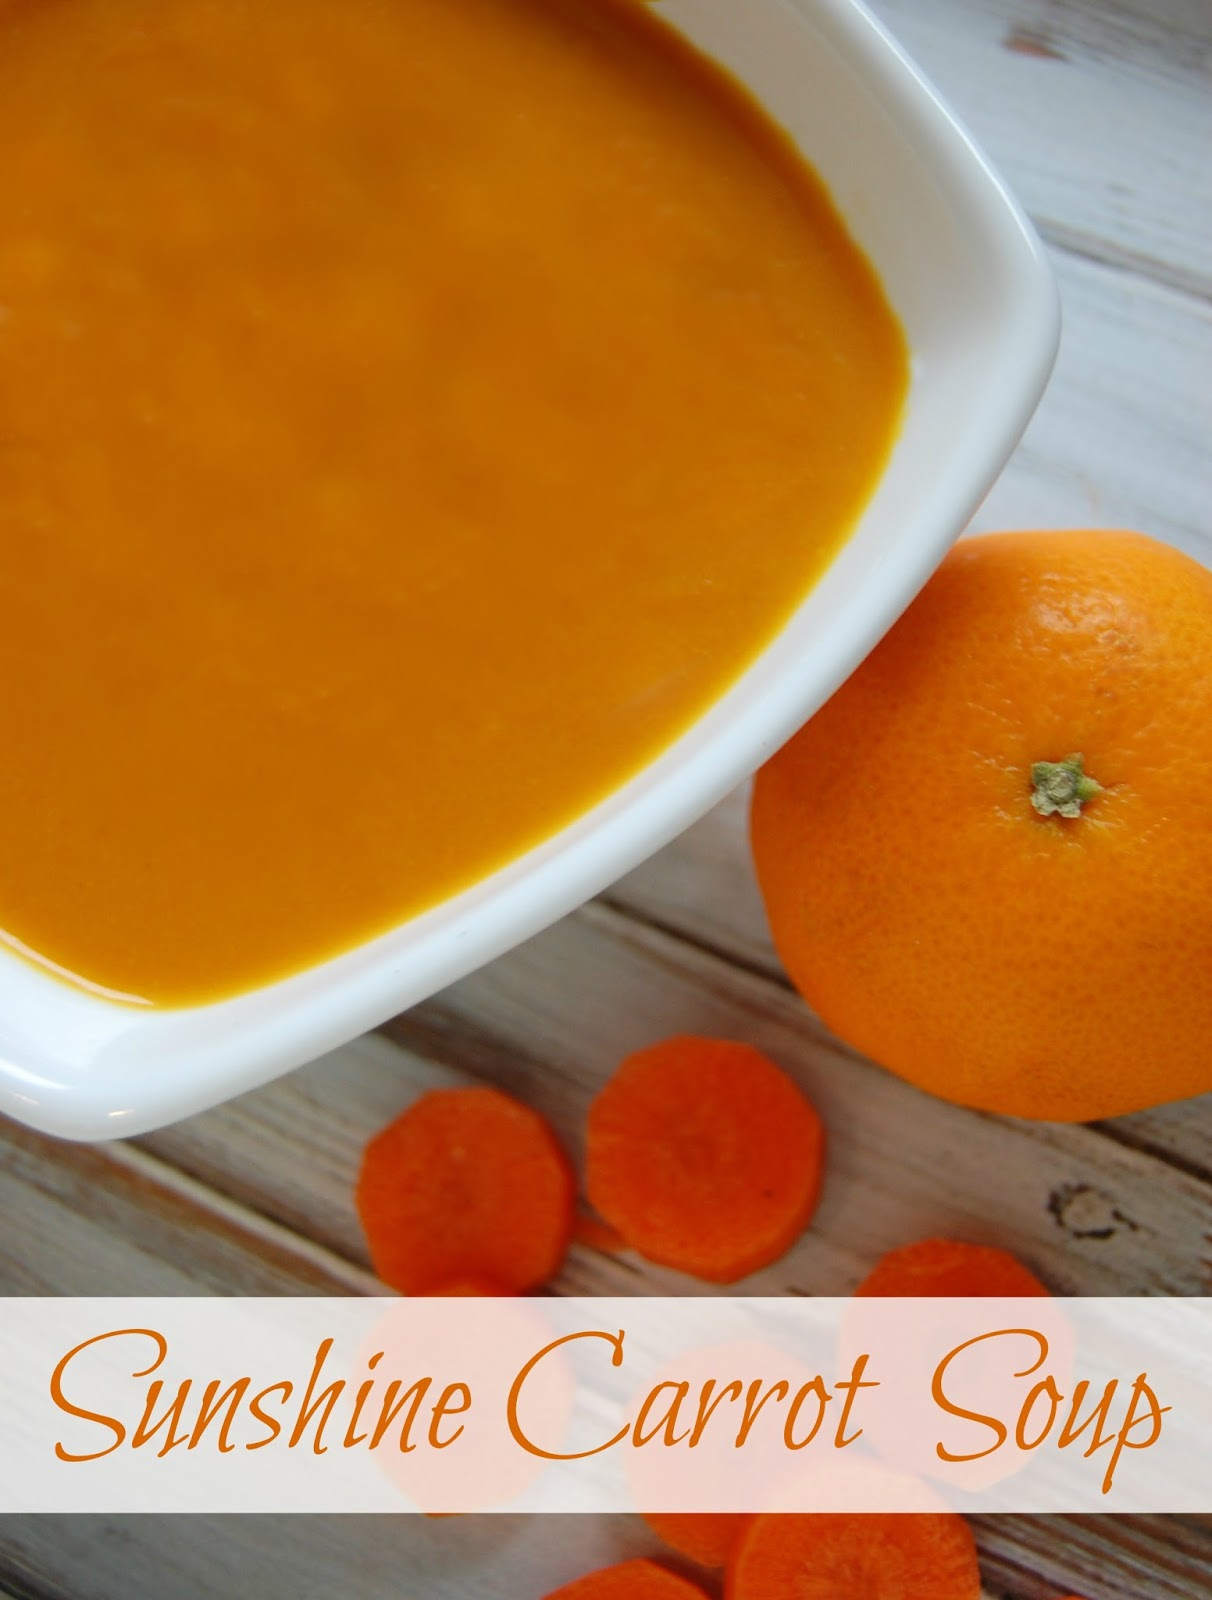 Sunshine Carrot Soup - Carrot soup with the kick of ginger and sweetness of orange! #soup #carrotsoup #realfood